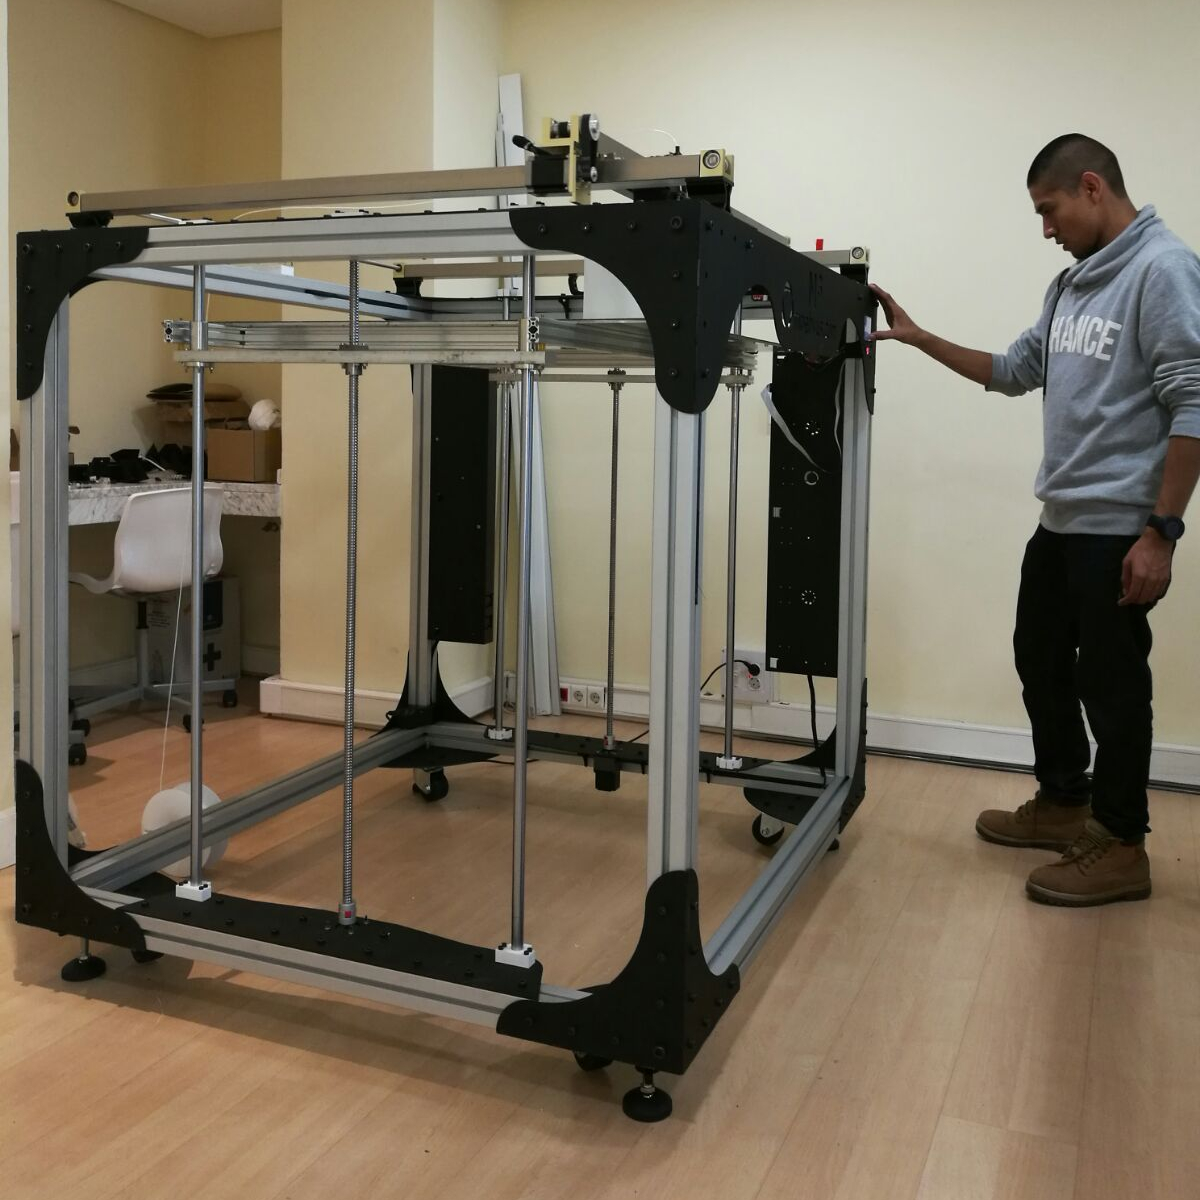 10 large scale 3d printers big enough to print furniture for Furniture 3d printing